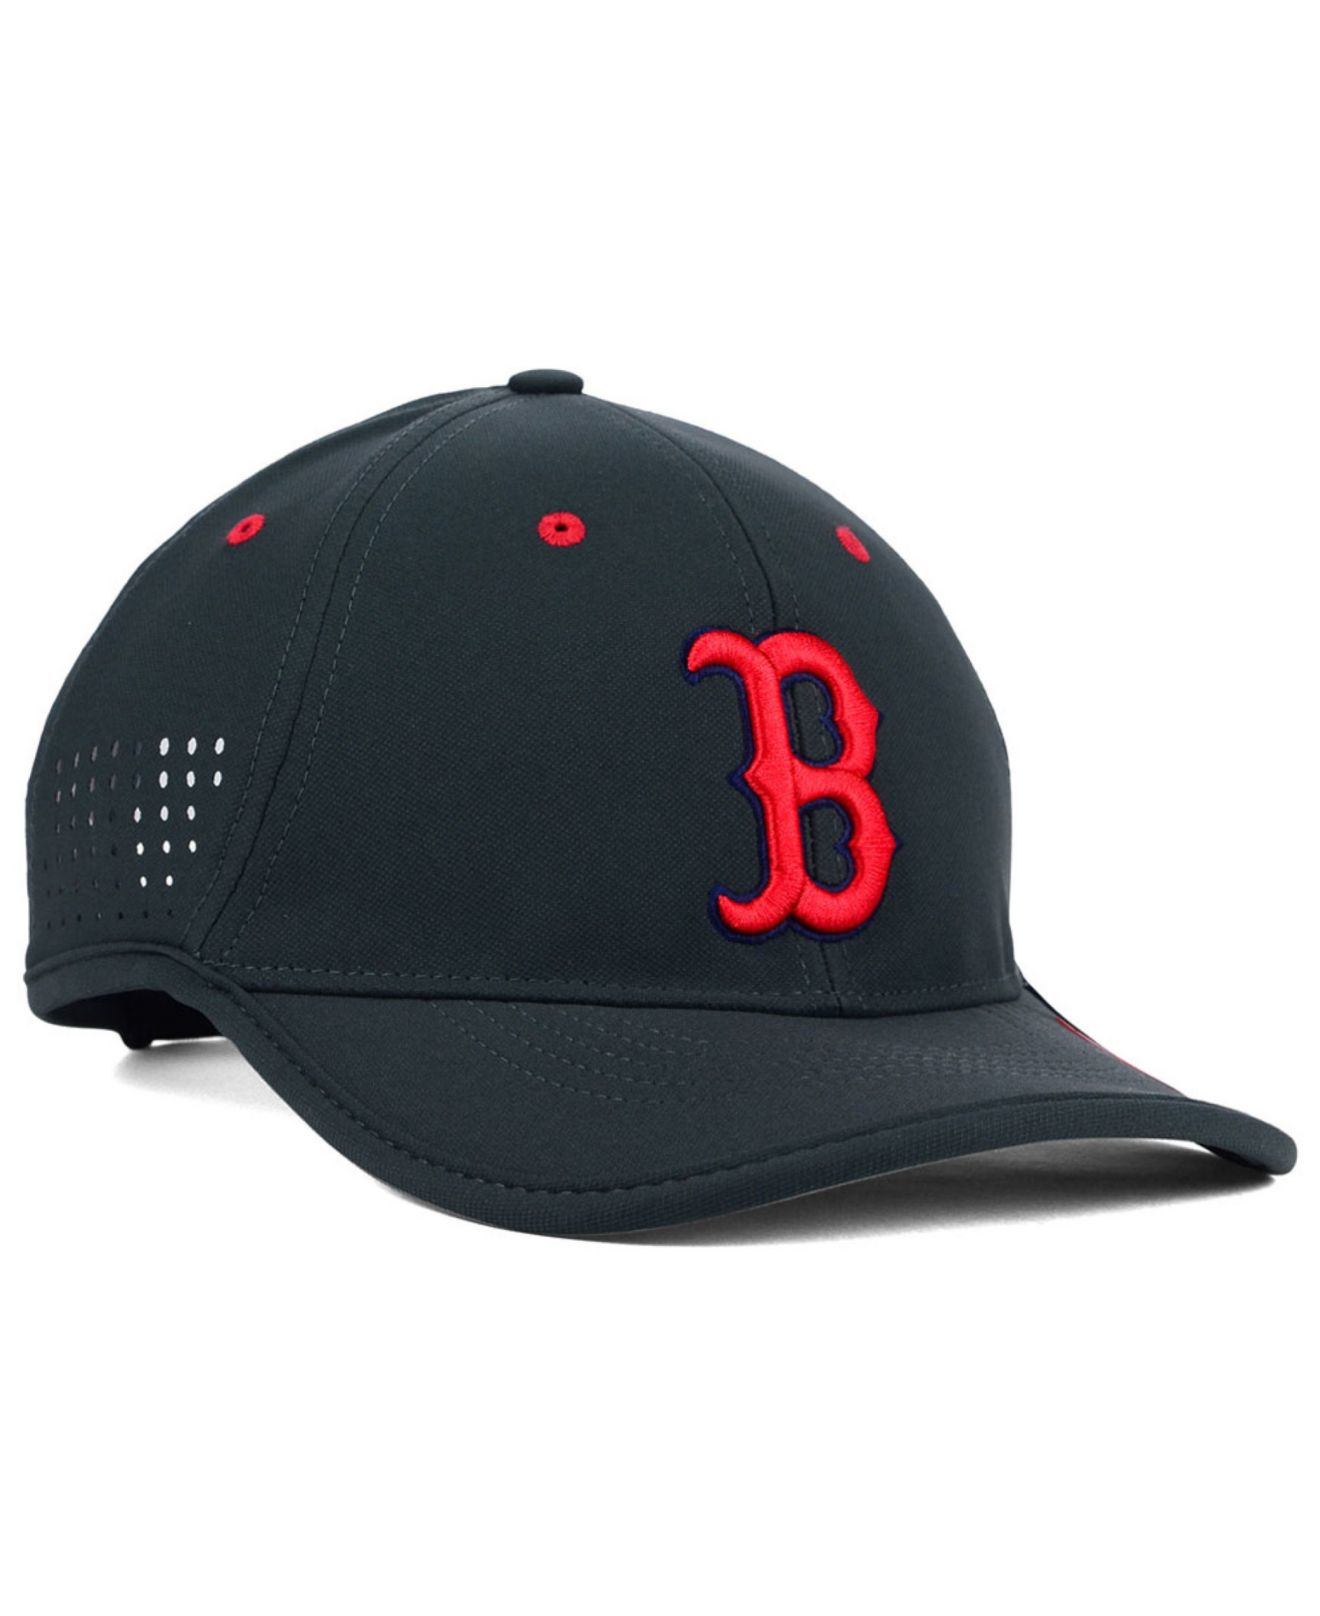 Lyst - Nike Boston Red Sox Vapor Swoosh Adjustable Cap in Gray for Men 4f9380bf0a8